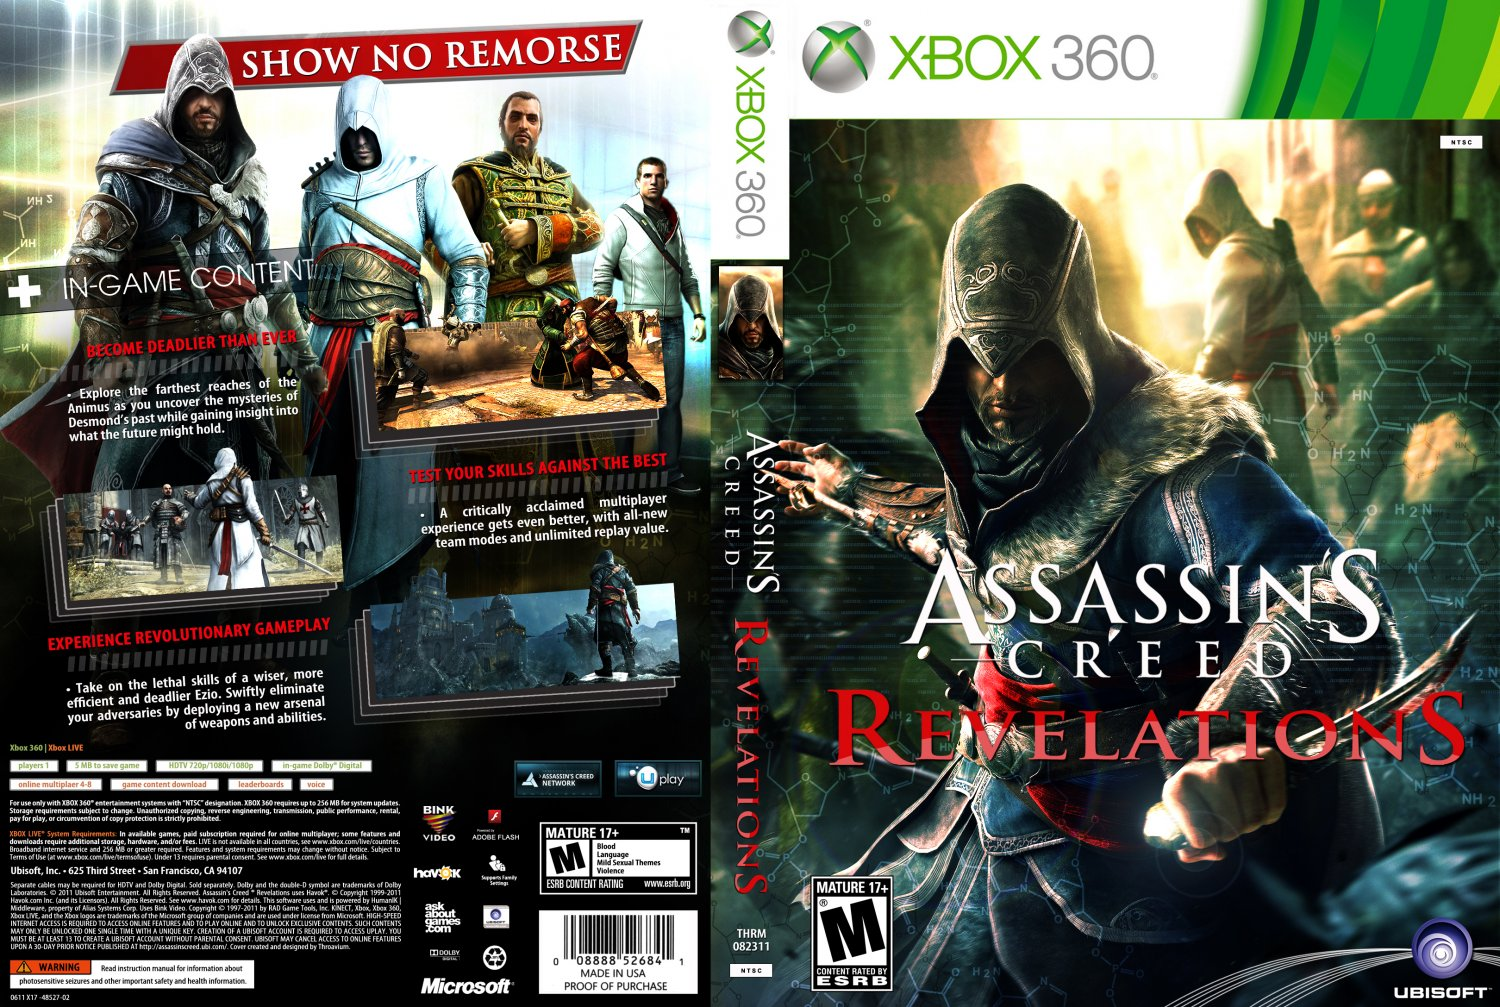 assassins creed revelations xbox 360 game covers